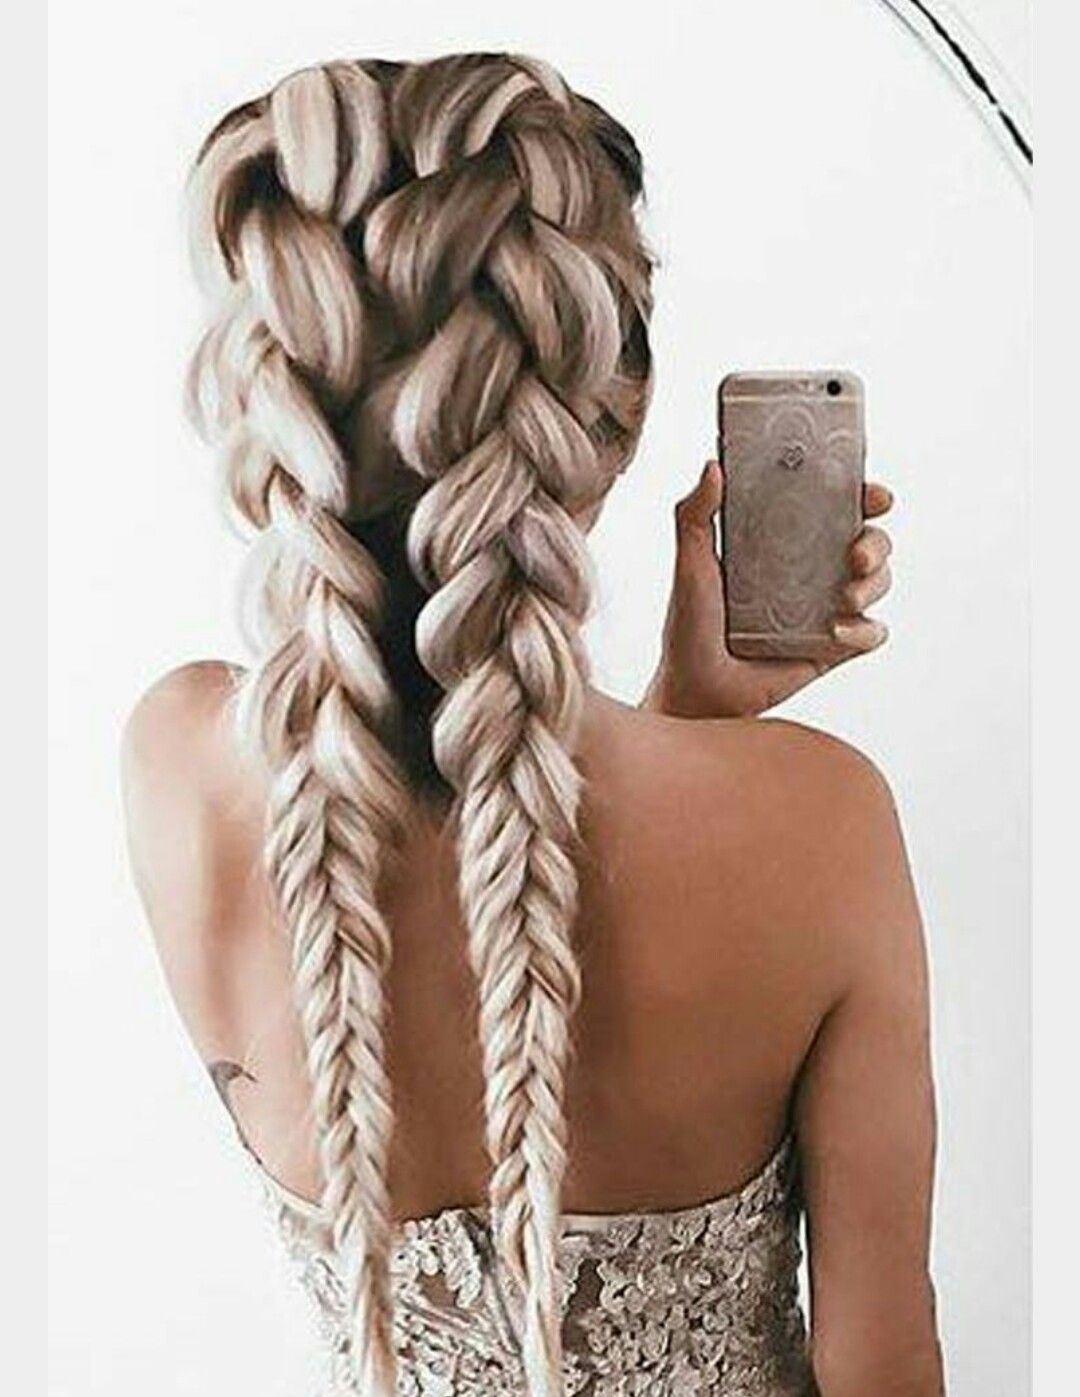 double braid hairstyles. i'm loving braids right now